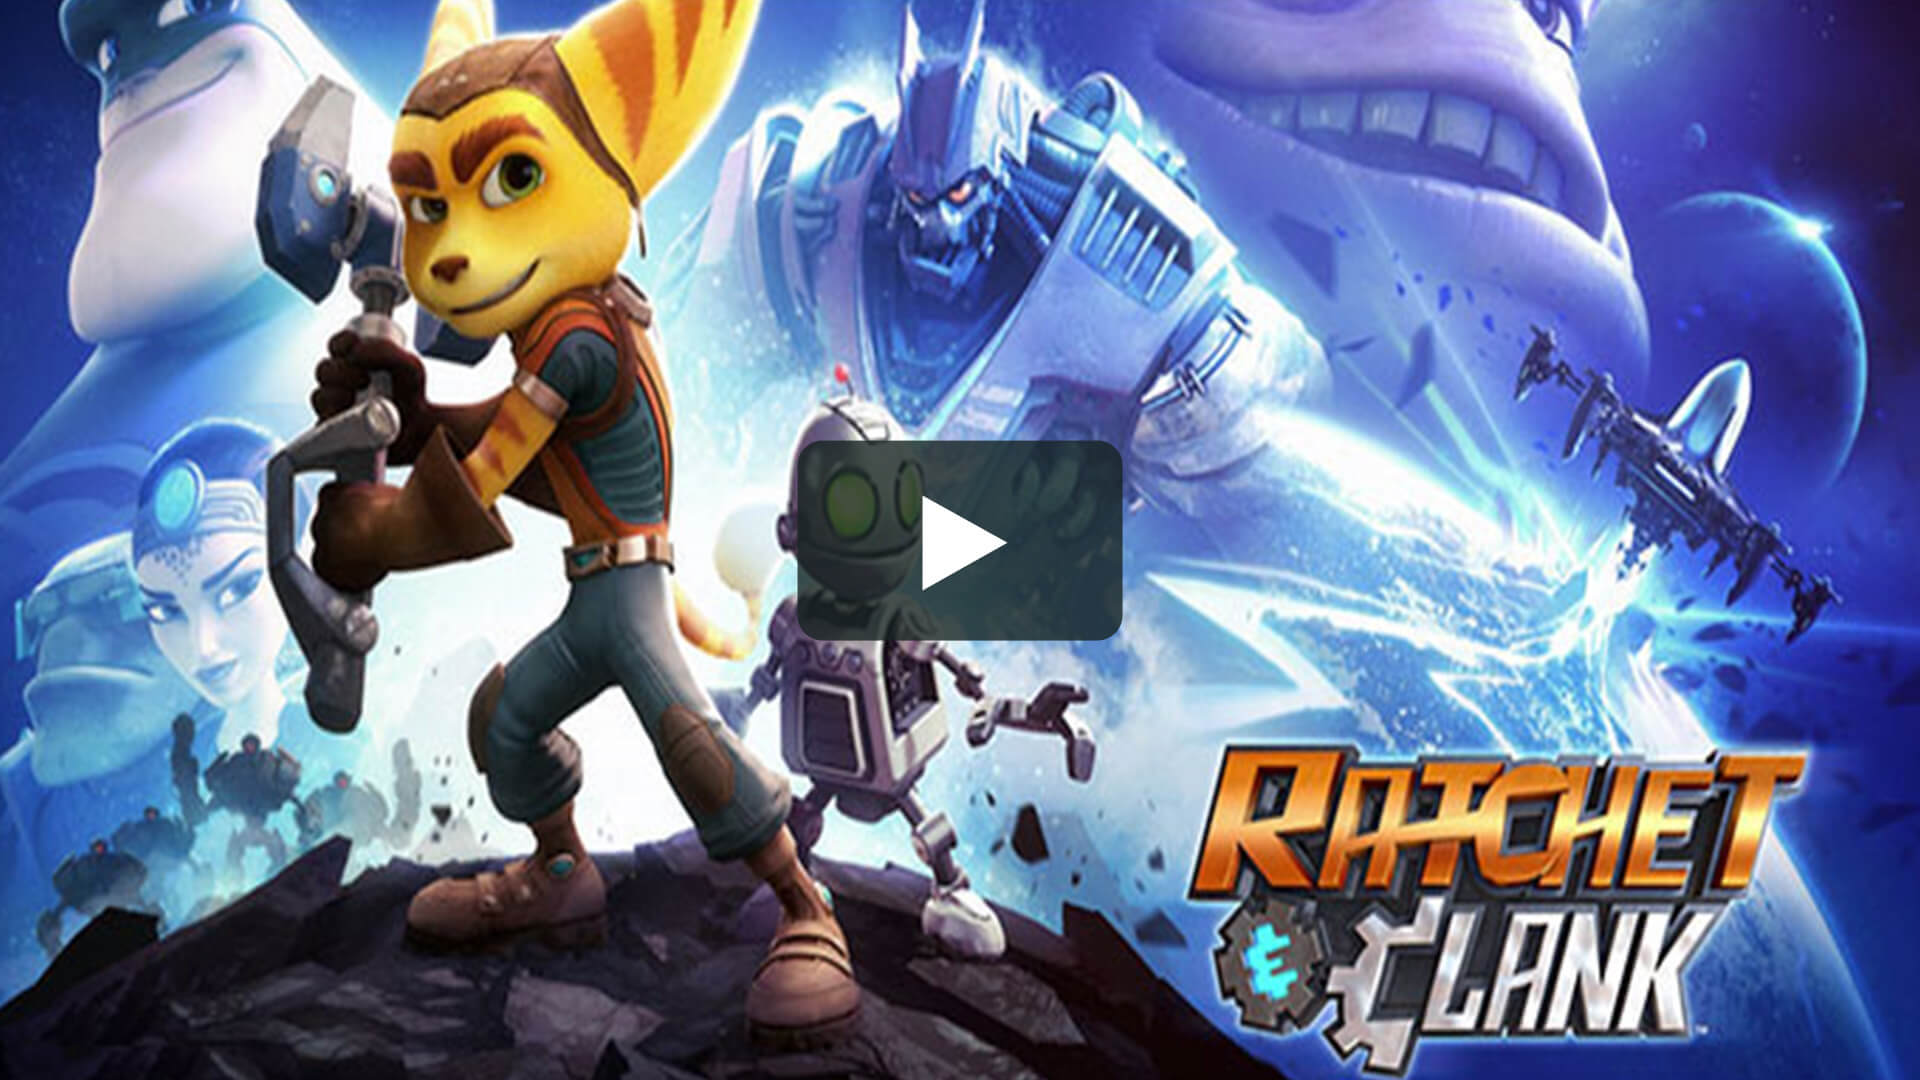 Ratchet and Clank - 銀河守衛隊